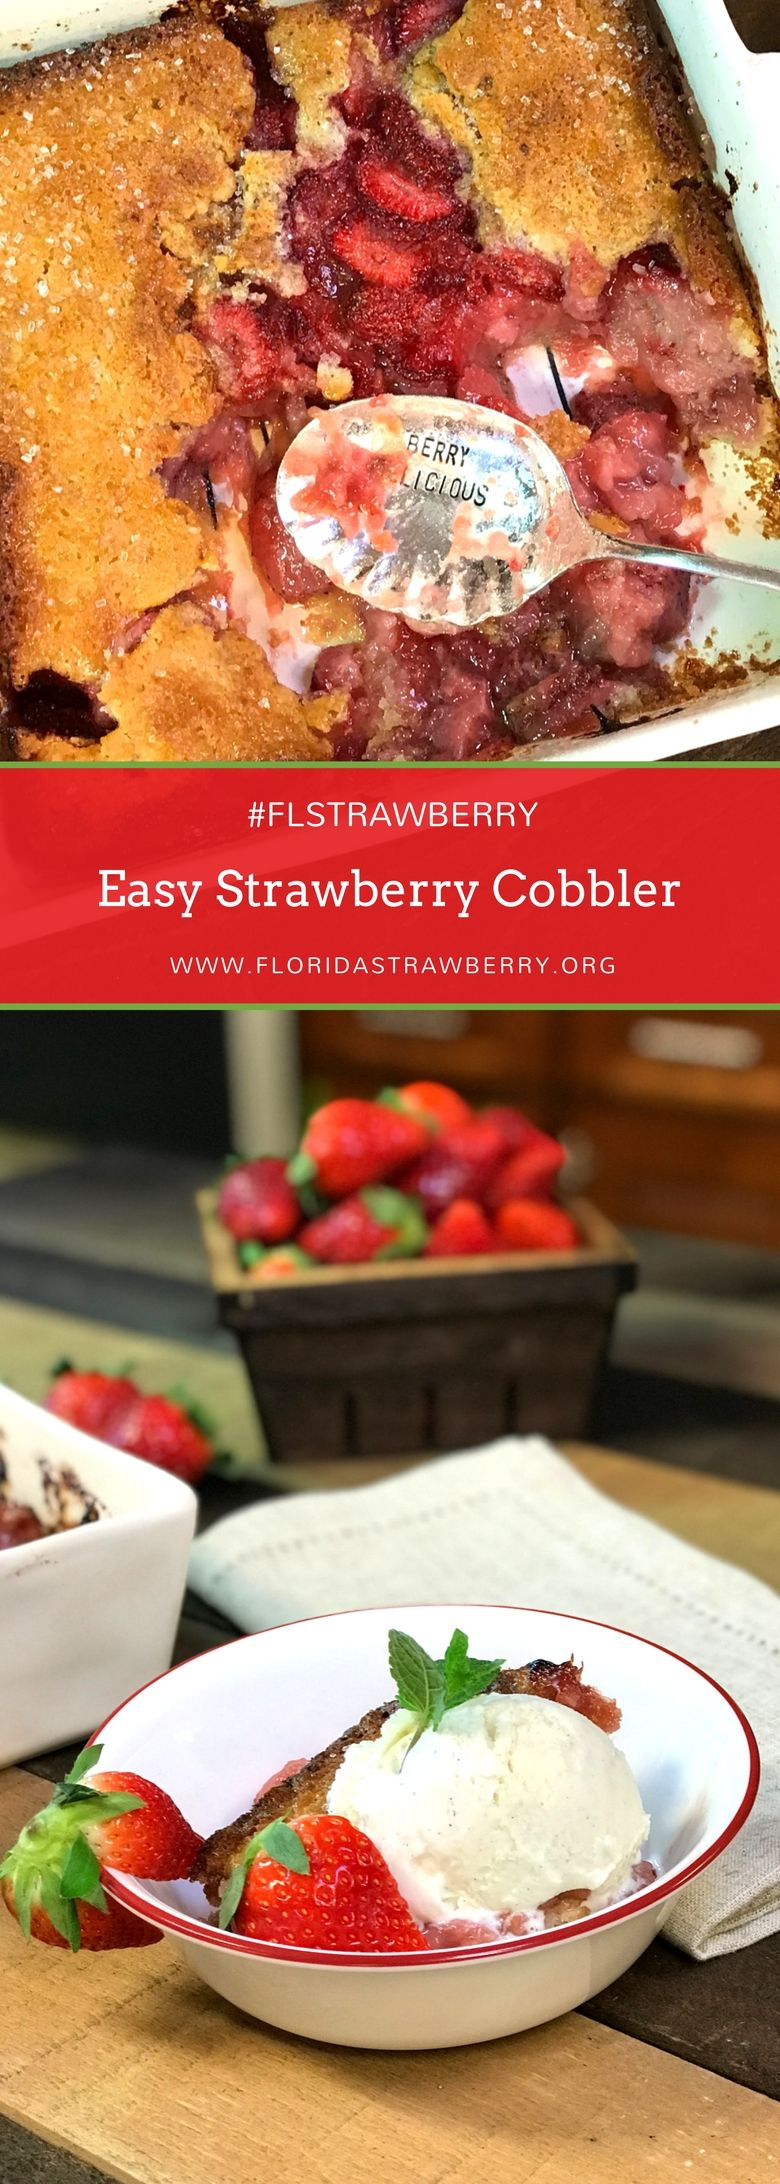 We decided to be a little rebellious with our easy strawberry cobbler recipe. Instead of cooking the dough over the fresh fruit, we cook it at the bottom of the pan! This allows the butter at the bottom of the pan to bubble up through the dough, helping it rise to mix deliciously with the sweet Florida strawberries. #FLStrawberry #strawberries #strawberryseason #dessertrecipes #dessert #cobbler